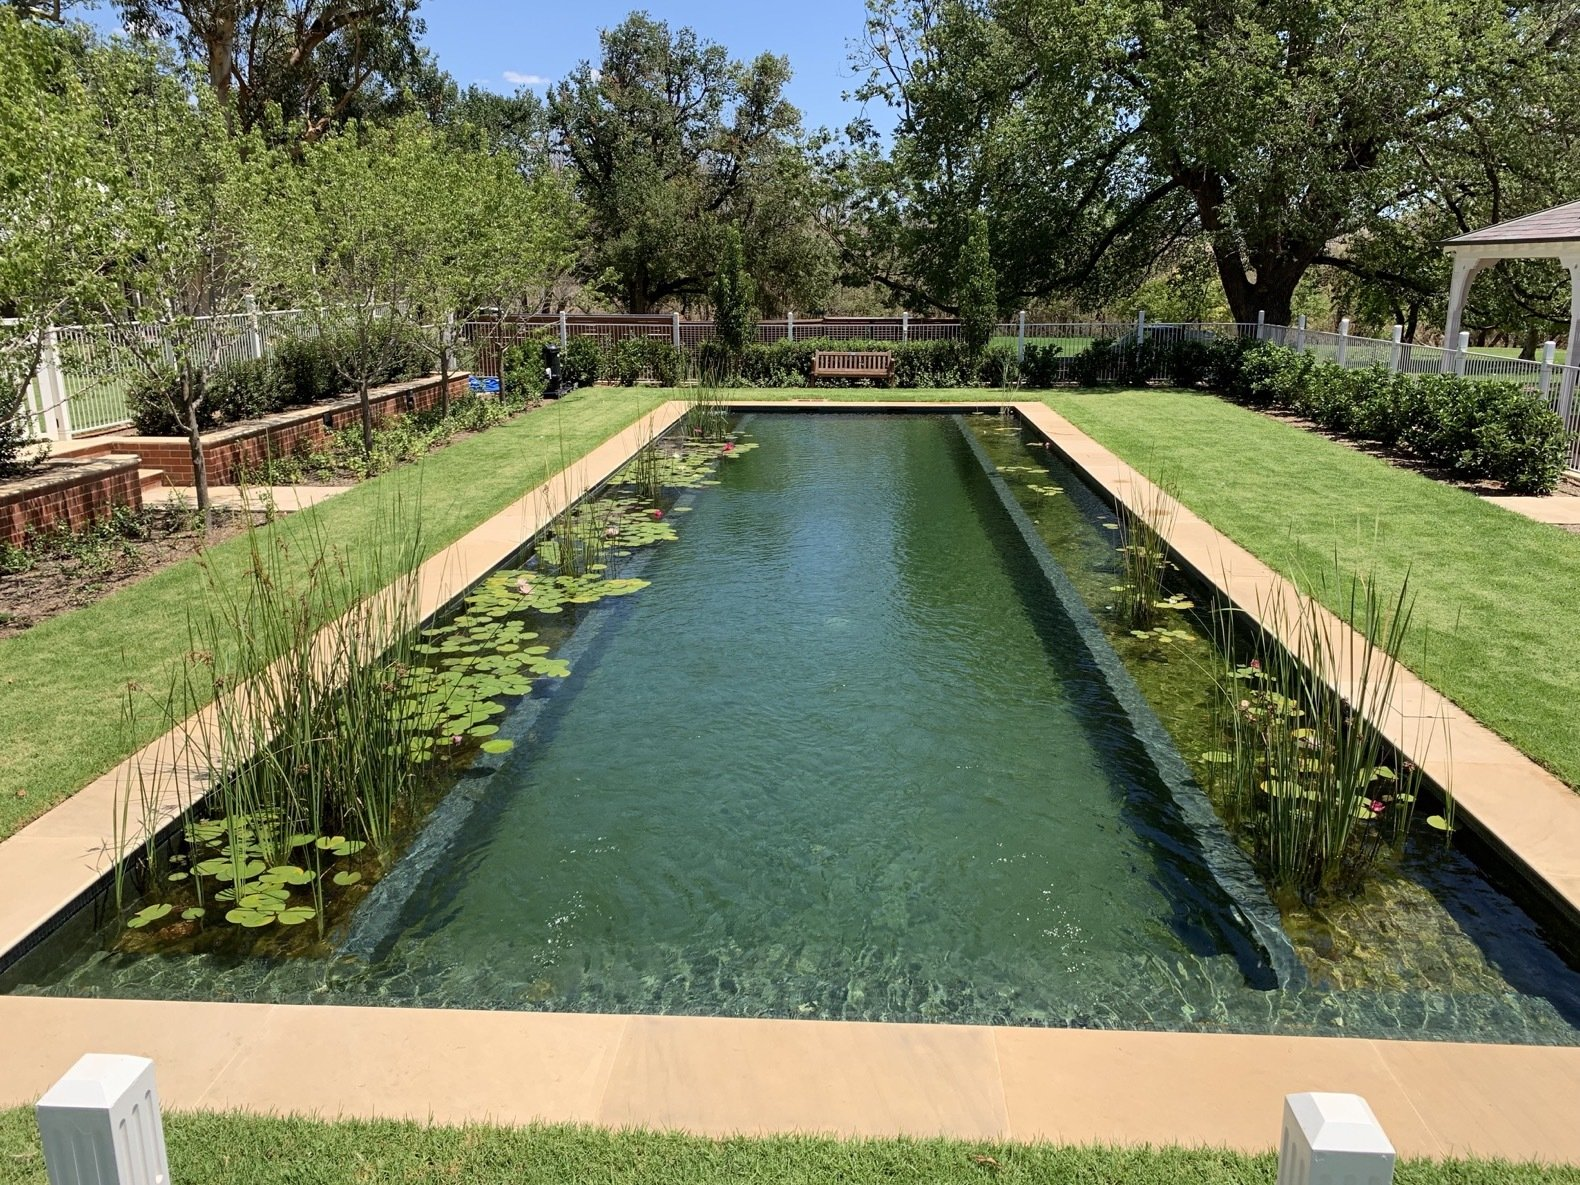 Photo 6 of 7 in 7 Natural Swimming Pools That Are Completely ...